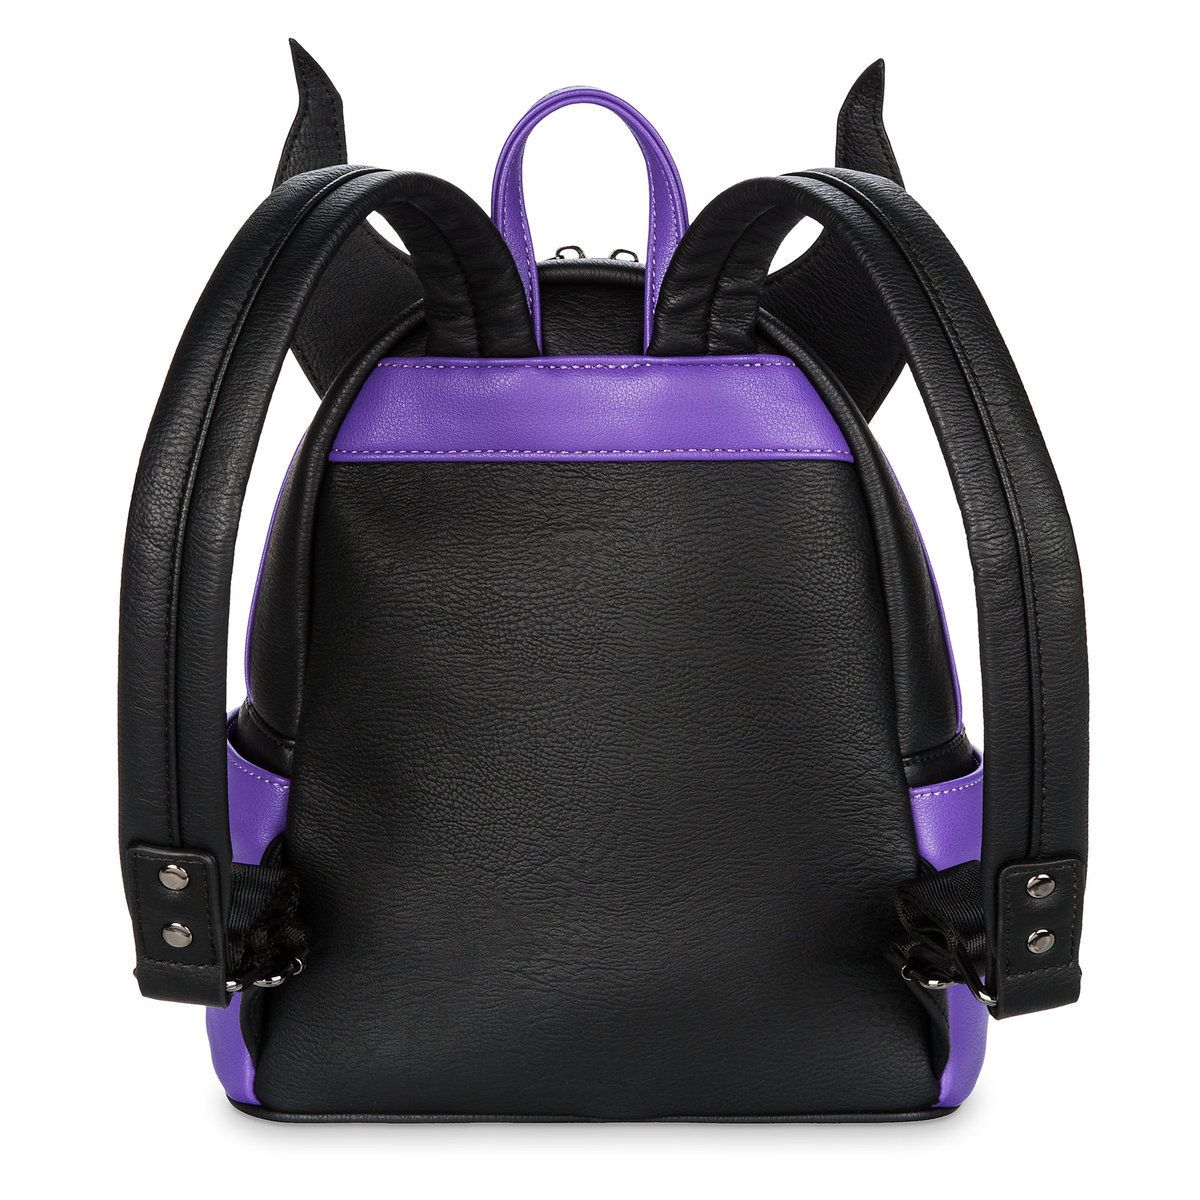 0509e27969e Product Image of Maleficent Fashion Backpack by Loungefly   2